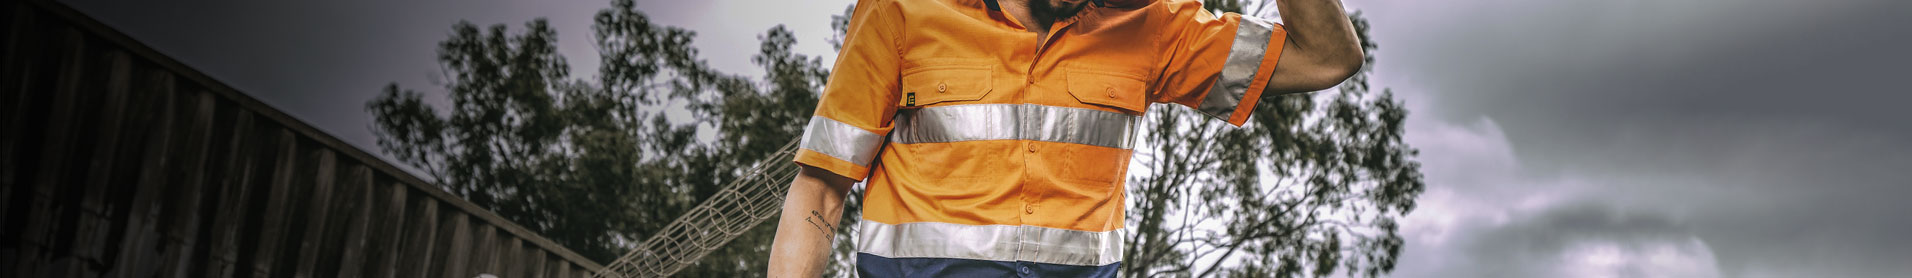 <p>ELEVEN Workwear Shirts are designed to withstand the harsh Australian climate - keeping you protected and comfortable all day long.&nbsp; Our shirts have a sun shield collar and are made using mechanical stretch fabric. Our non-High Vis styles are prewashed for added comfort while our Polo Shirts have a ventilated collar to help you stay cool. These are just a few of our standard features.&nbsp;</p>